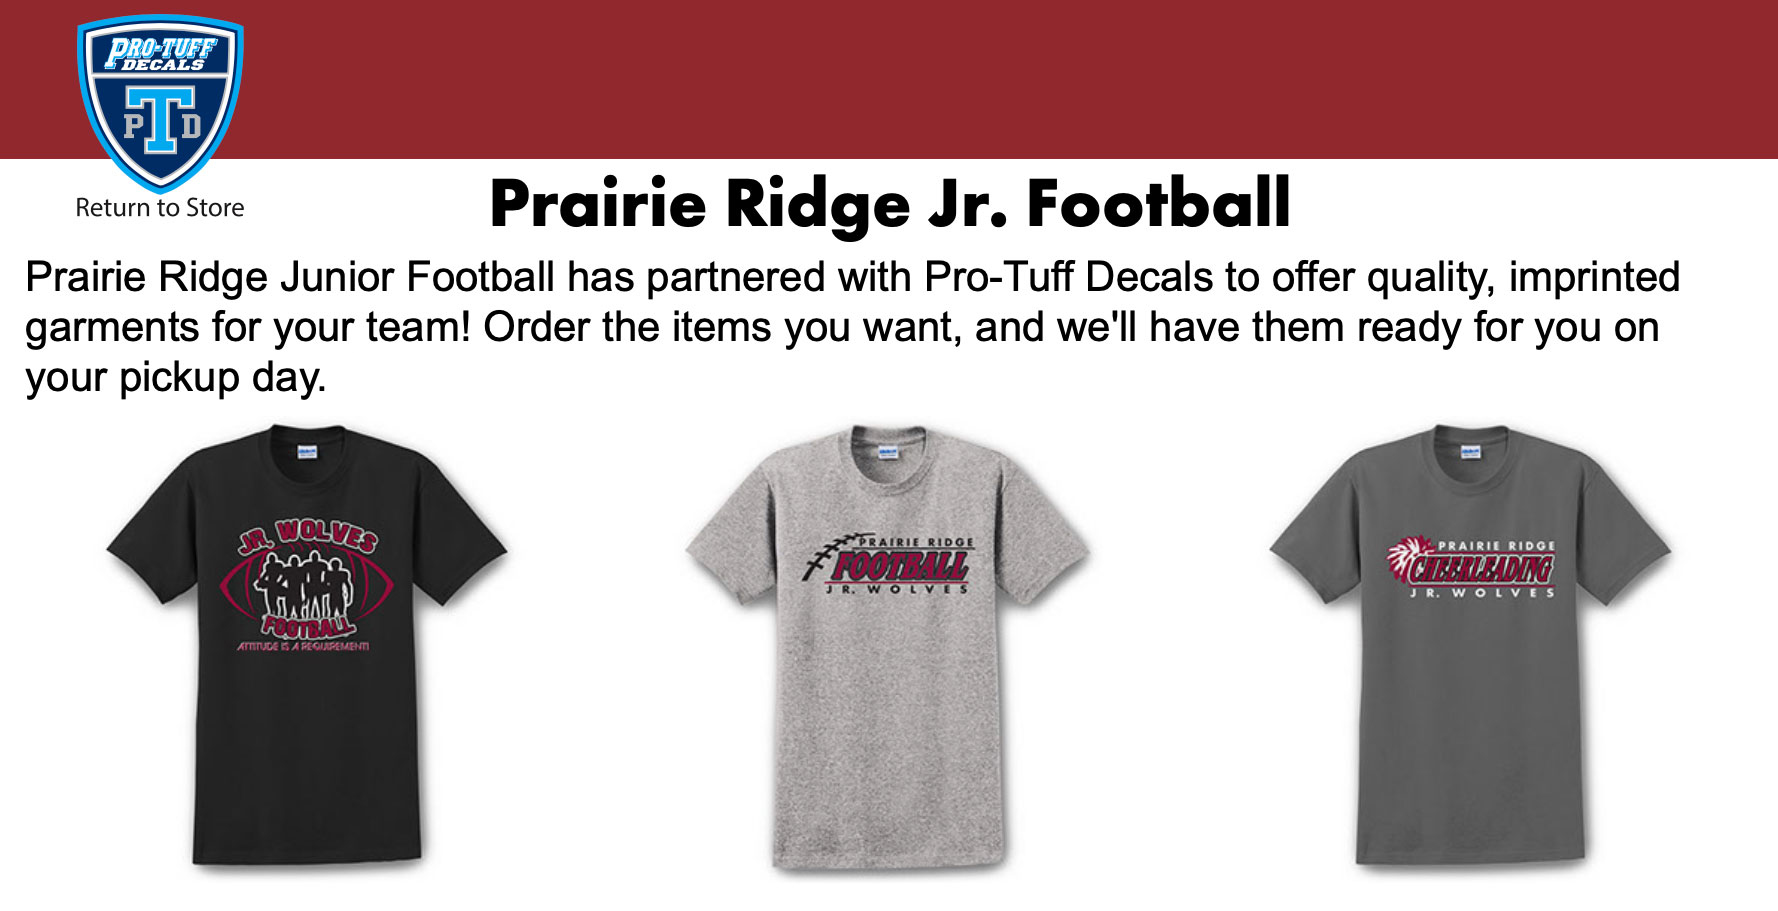 Prairie Ridge Jr. Football